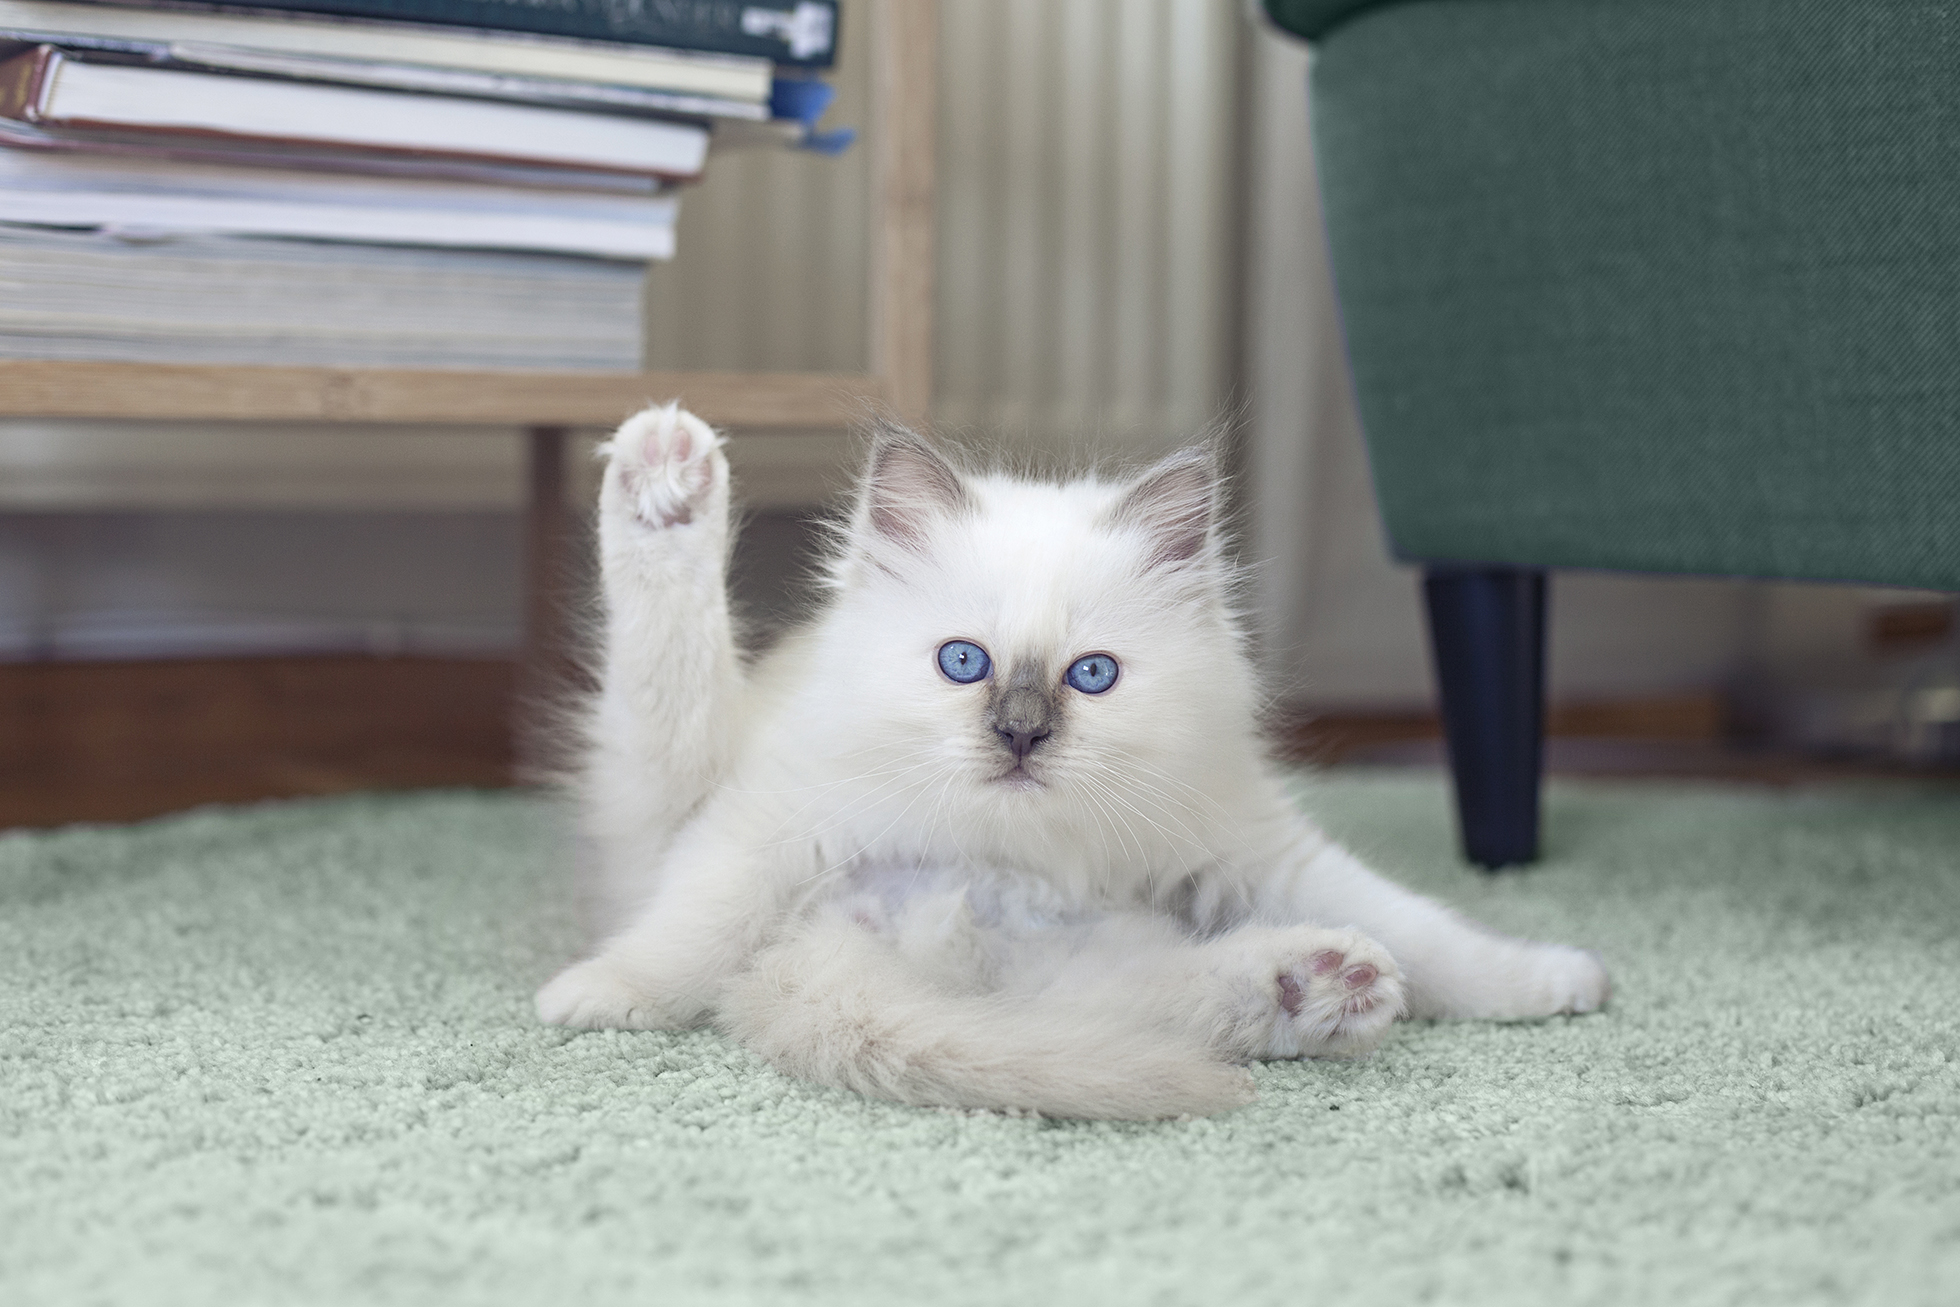 White kitten with blue eyes grooming self on green carpet